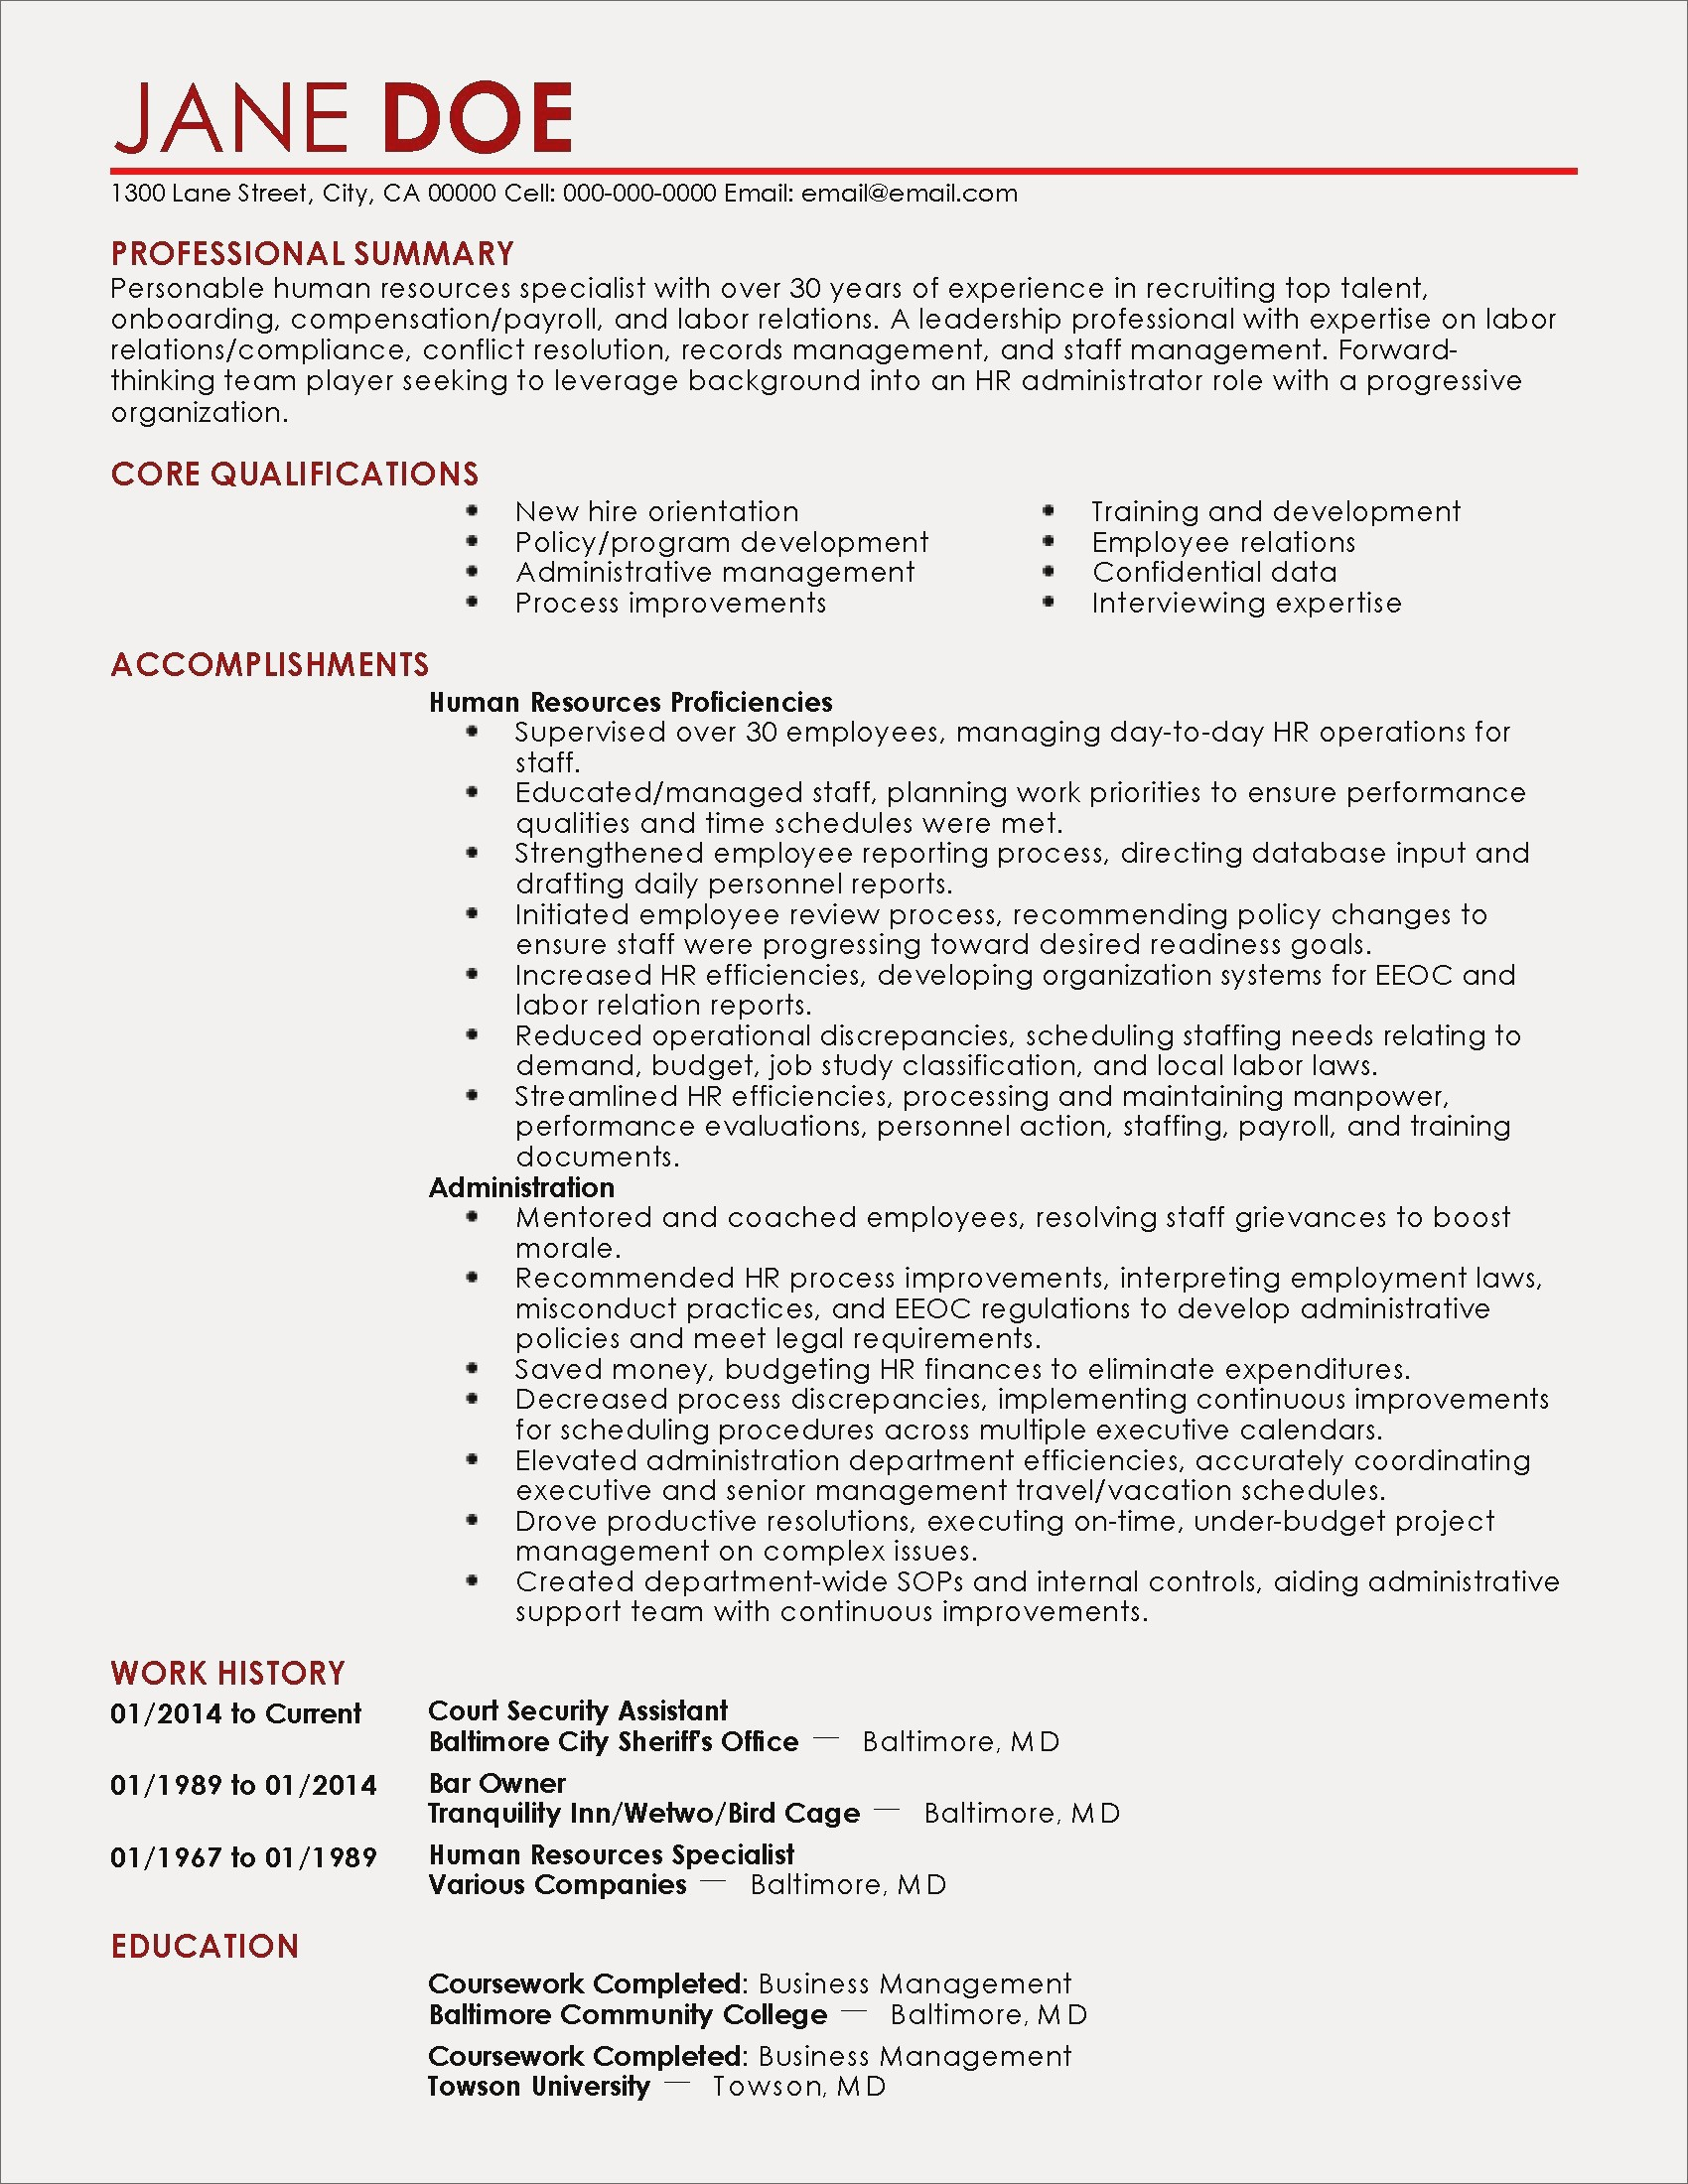 Medical Office assistant Resumes - Medical Administrative assistant Resume Samples Save Medical